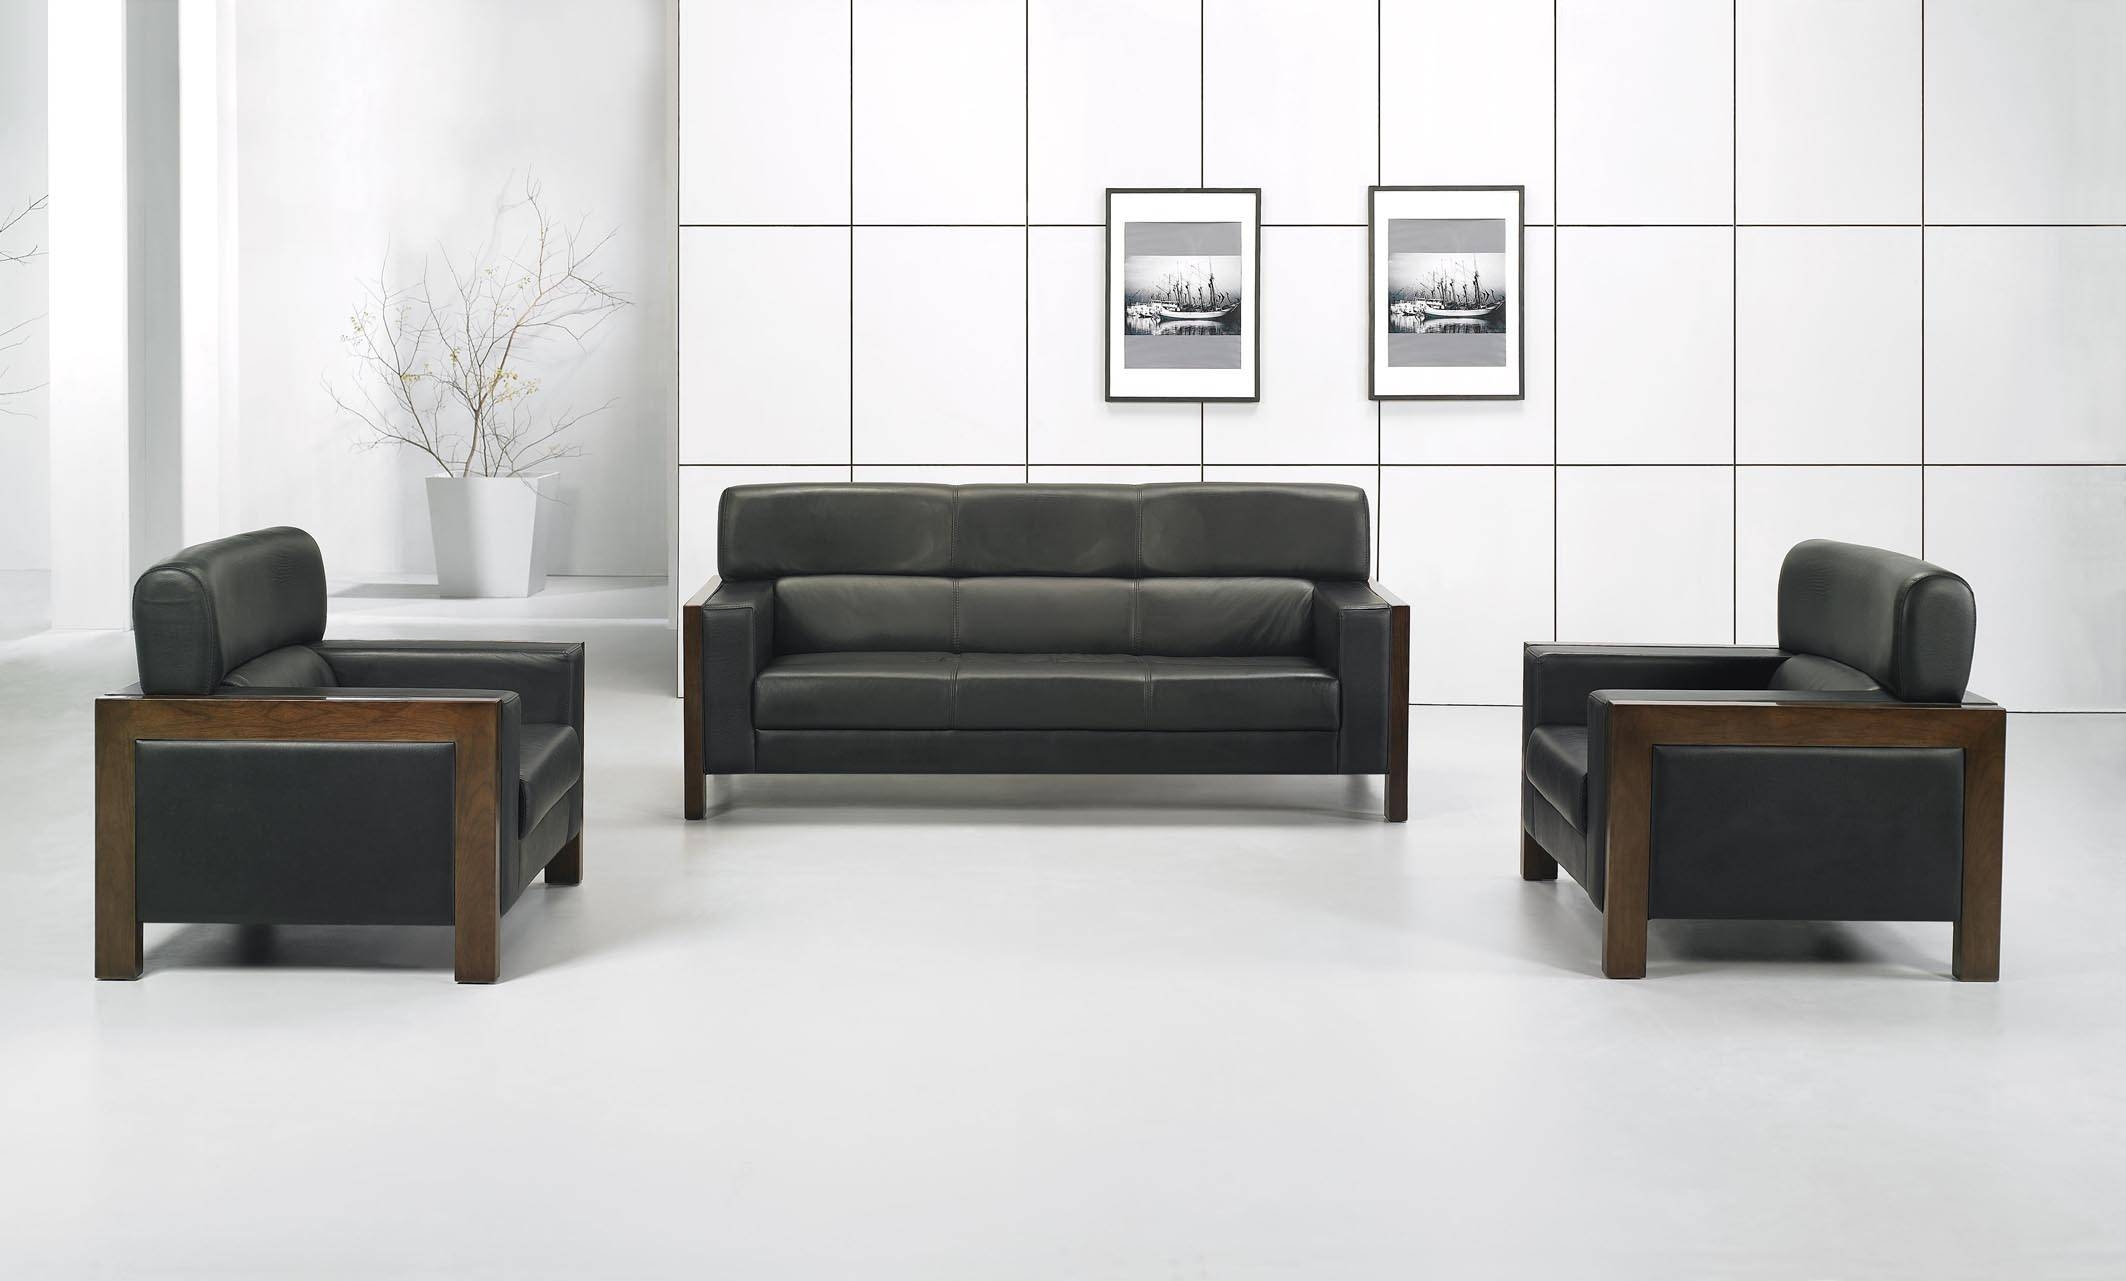 Office Sofa For Comfortable Office | Office Architect Intended For Office Sofas And Chairs (View 11 of 15)